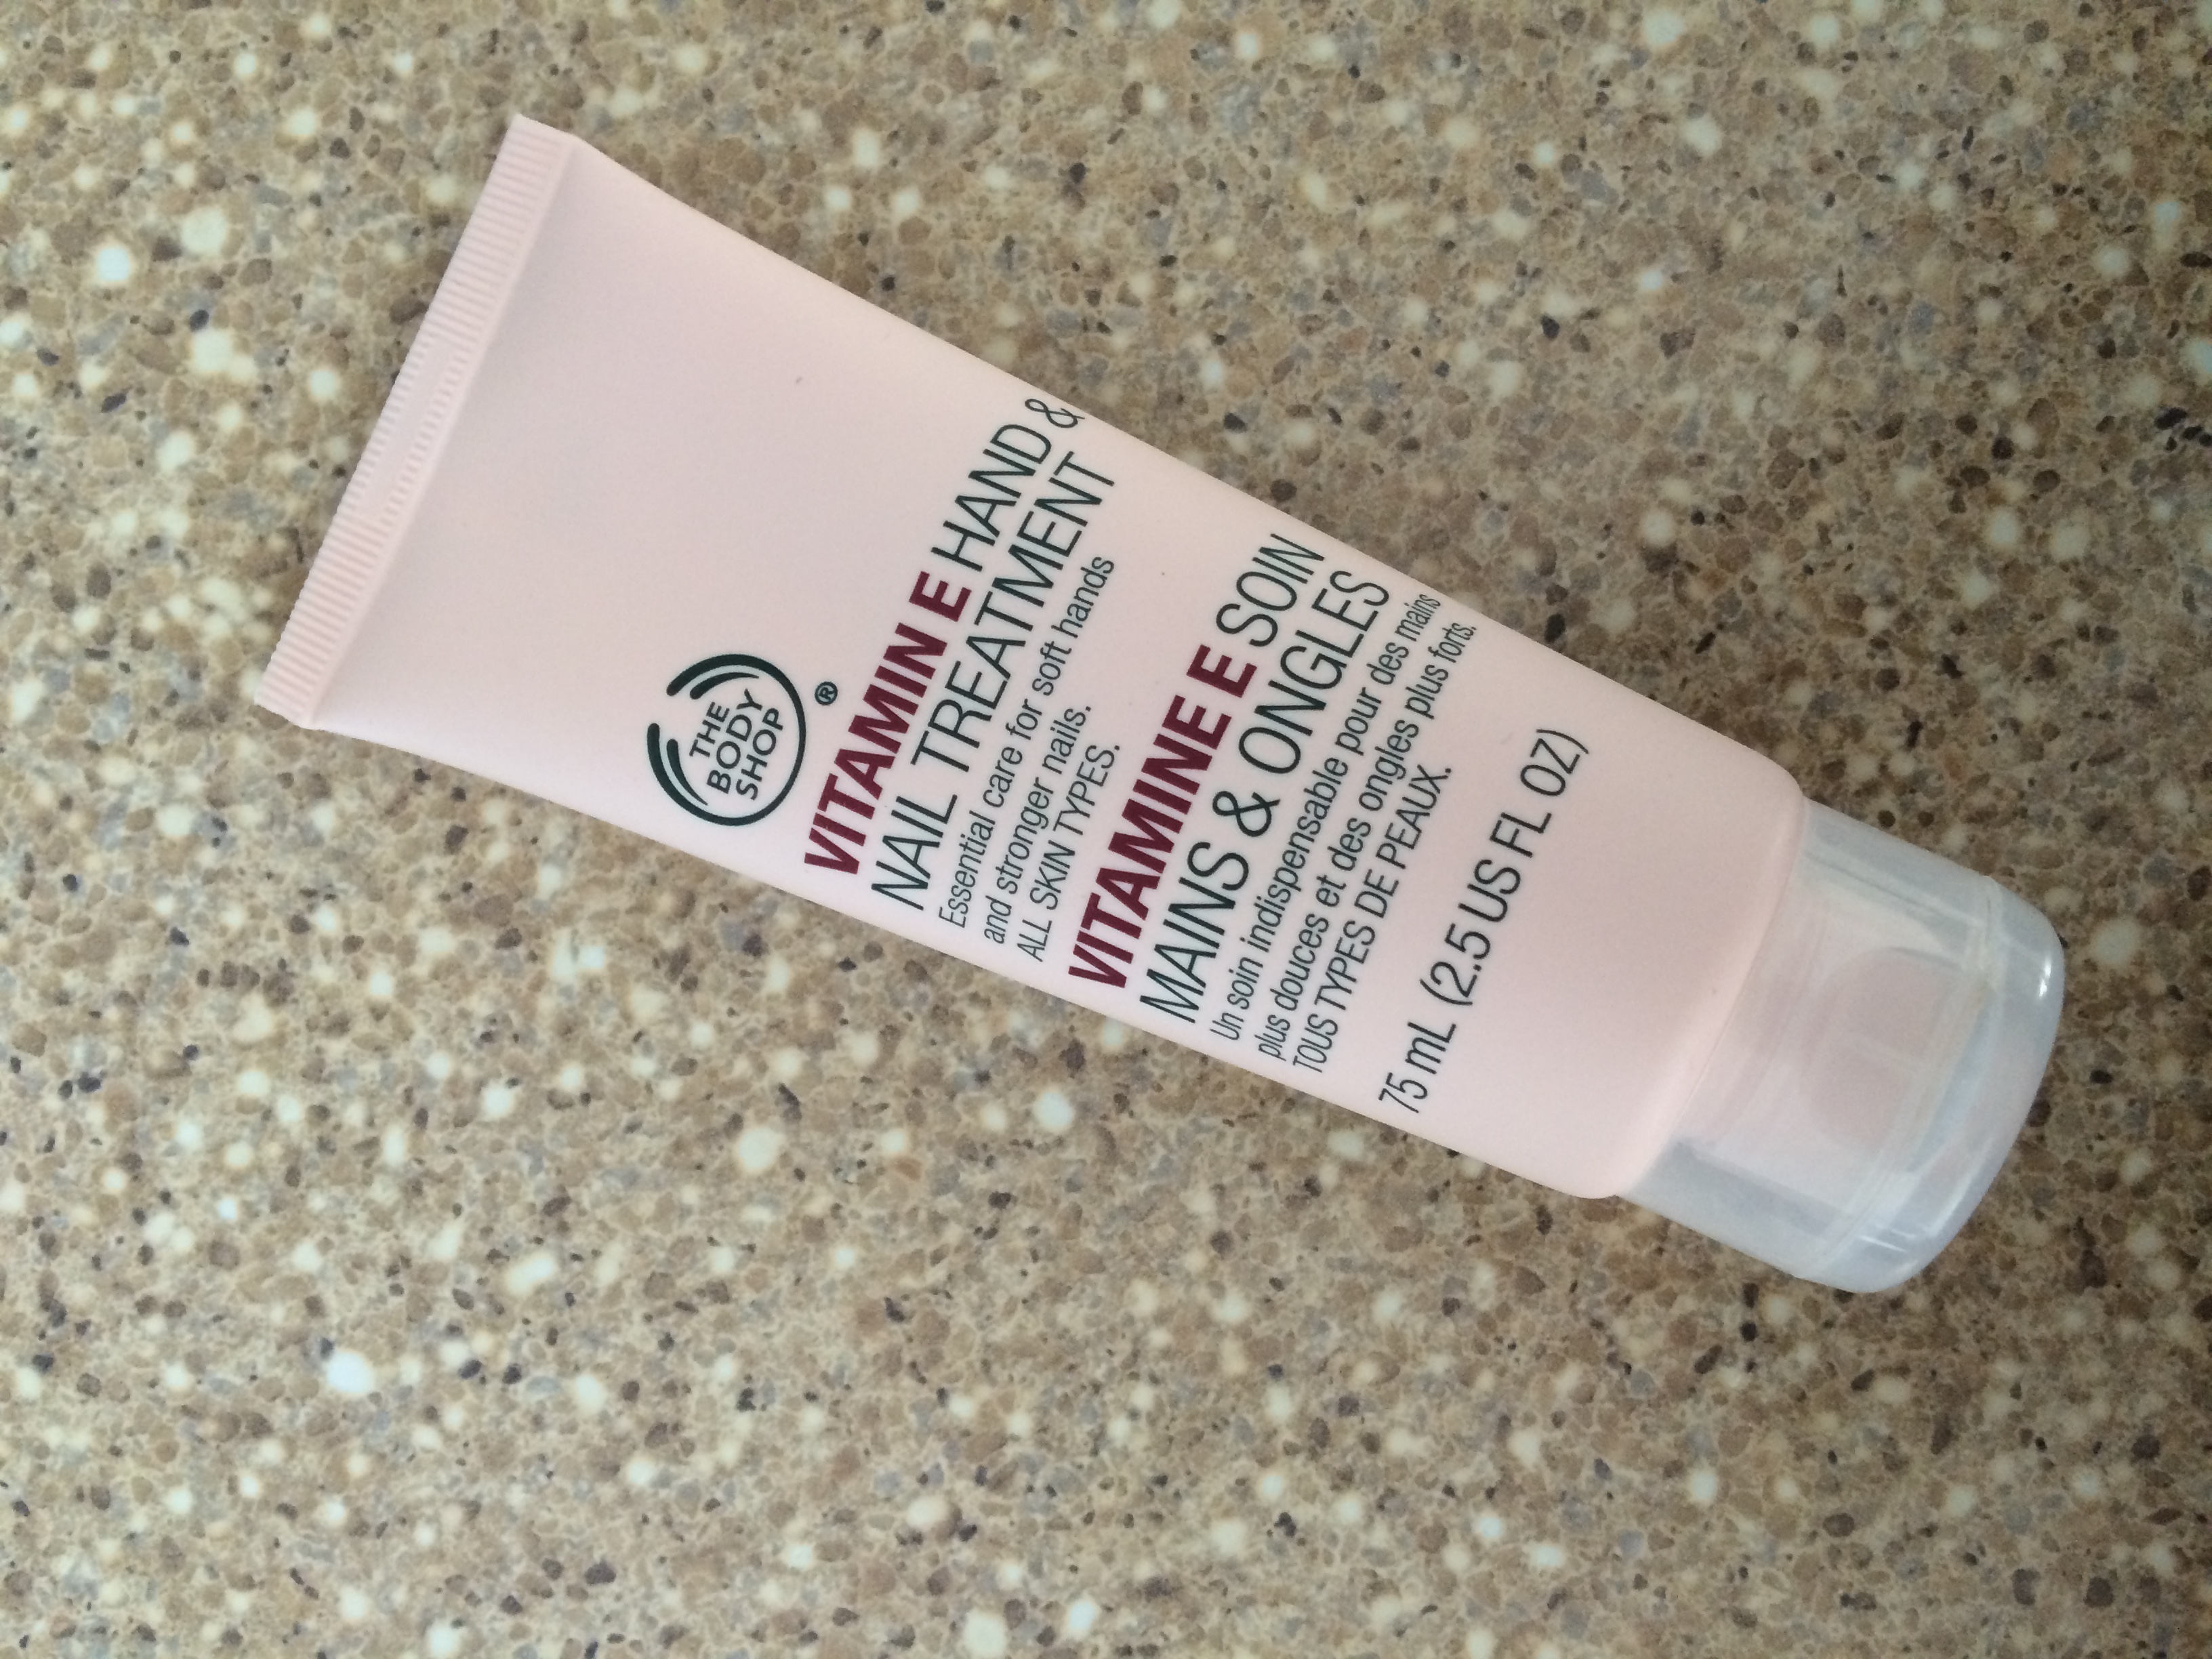 THE BODY SHOP® Vitamin E Hand & Nail Treatment uploaded by Marrion G.